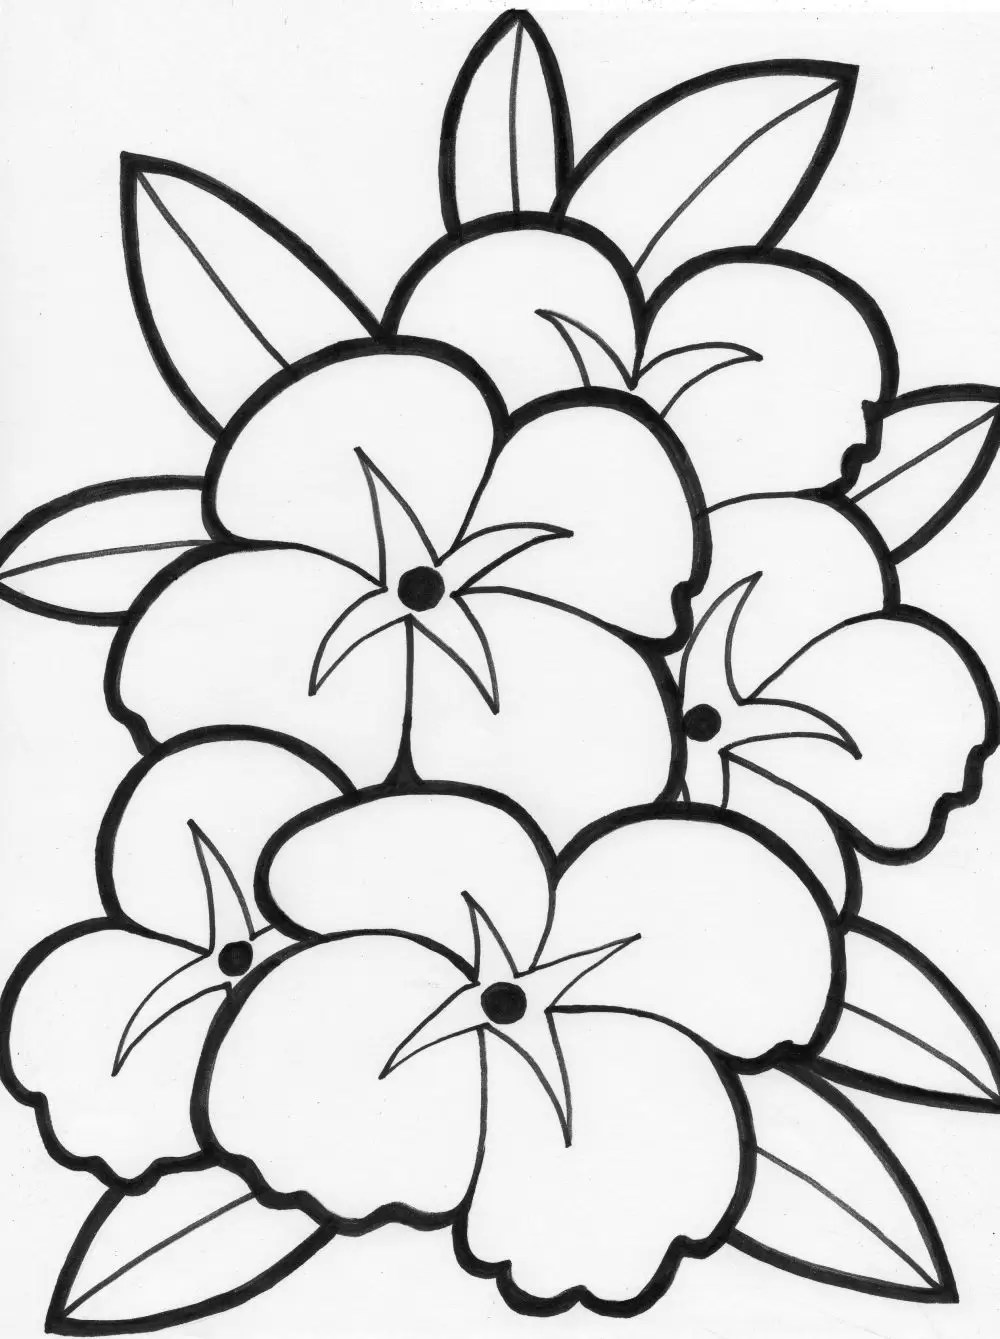 Flower Petals Coloring Pages For Teens Coloring Pages